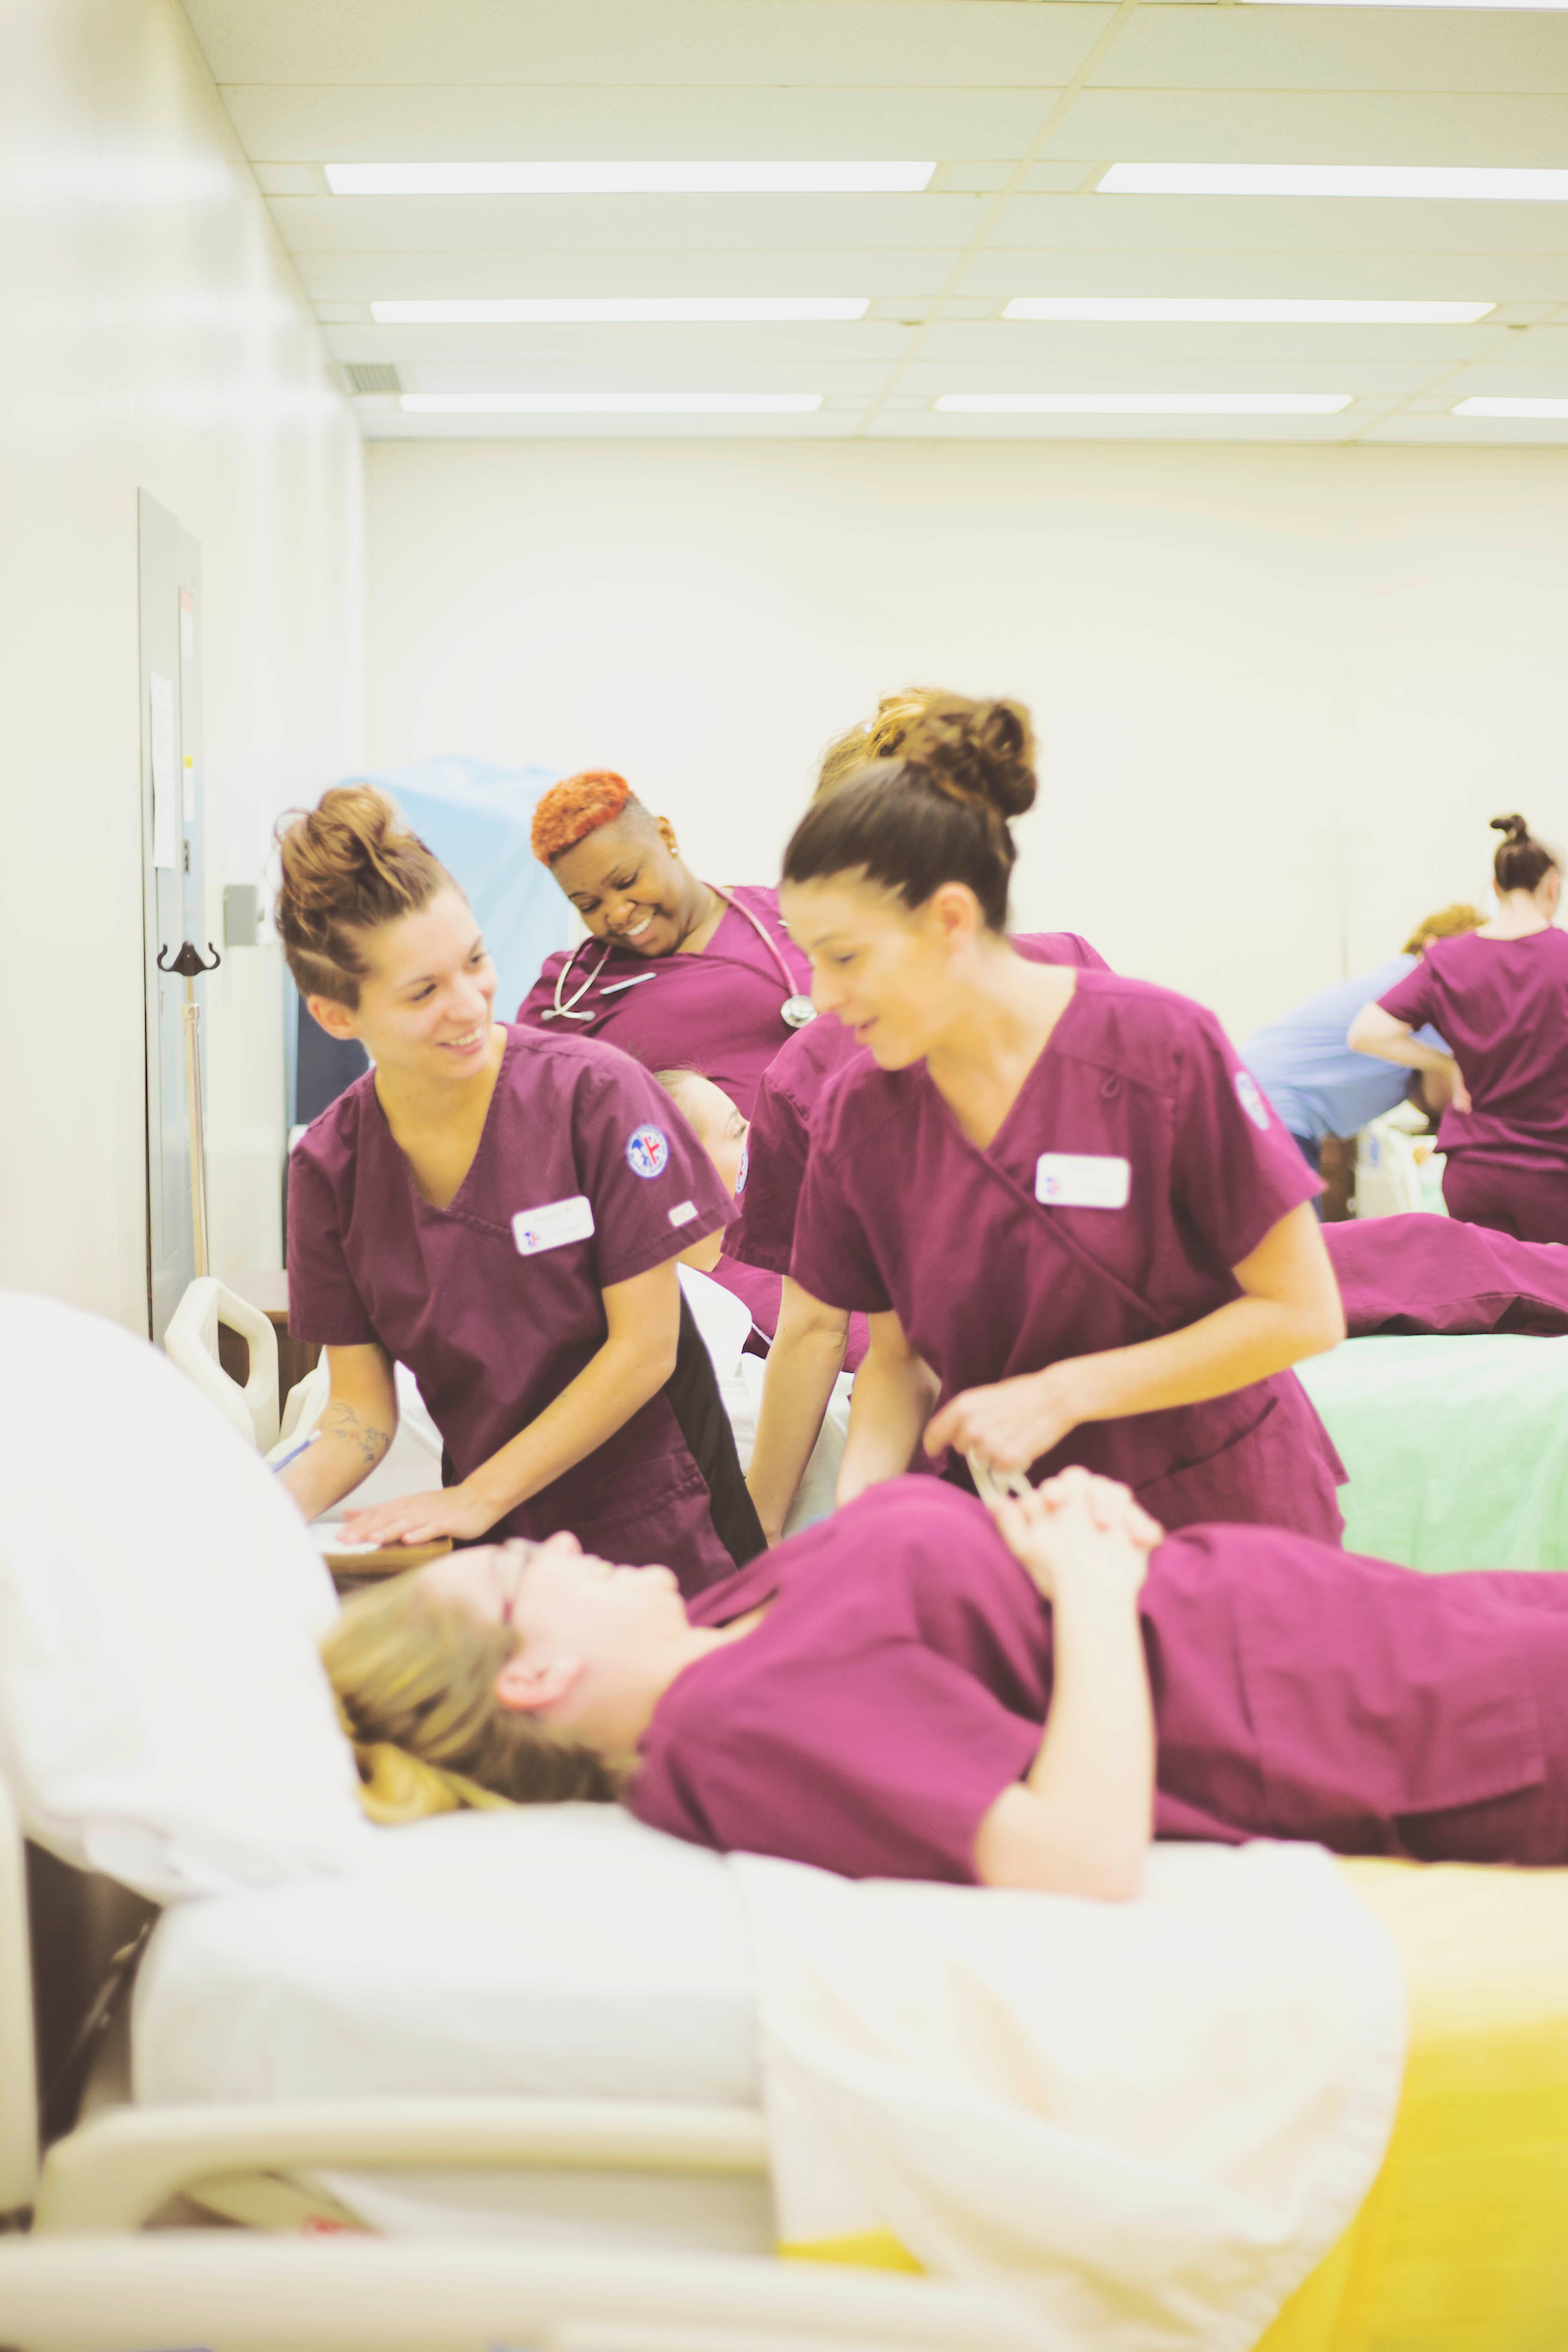 Personal support worker students work through a simulation in class. One student plays the patient and lays in bed, which the others act as PSWs and assist her.